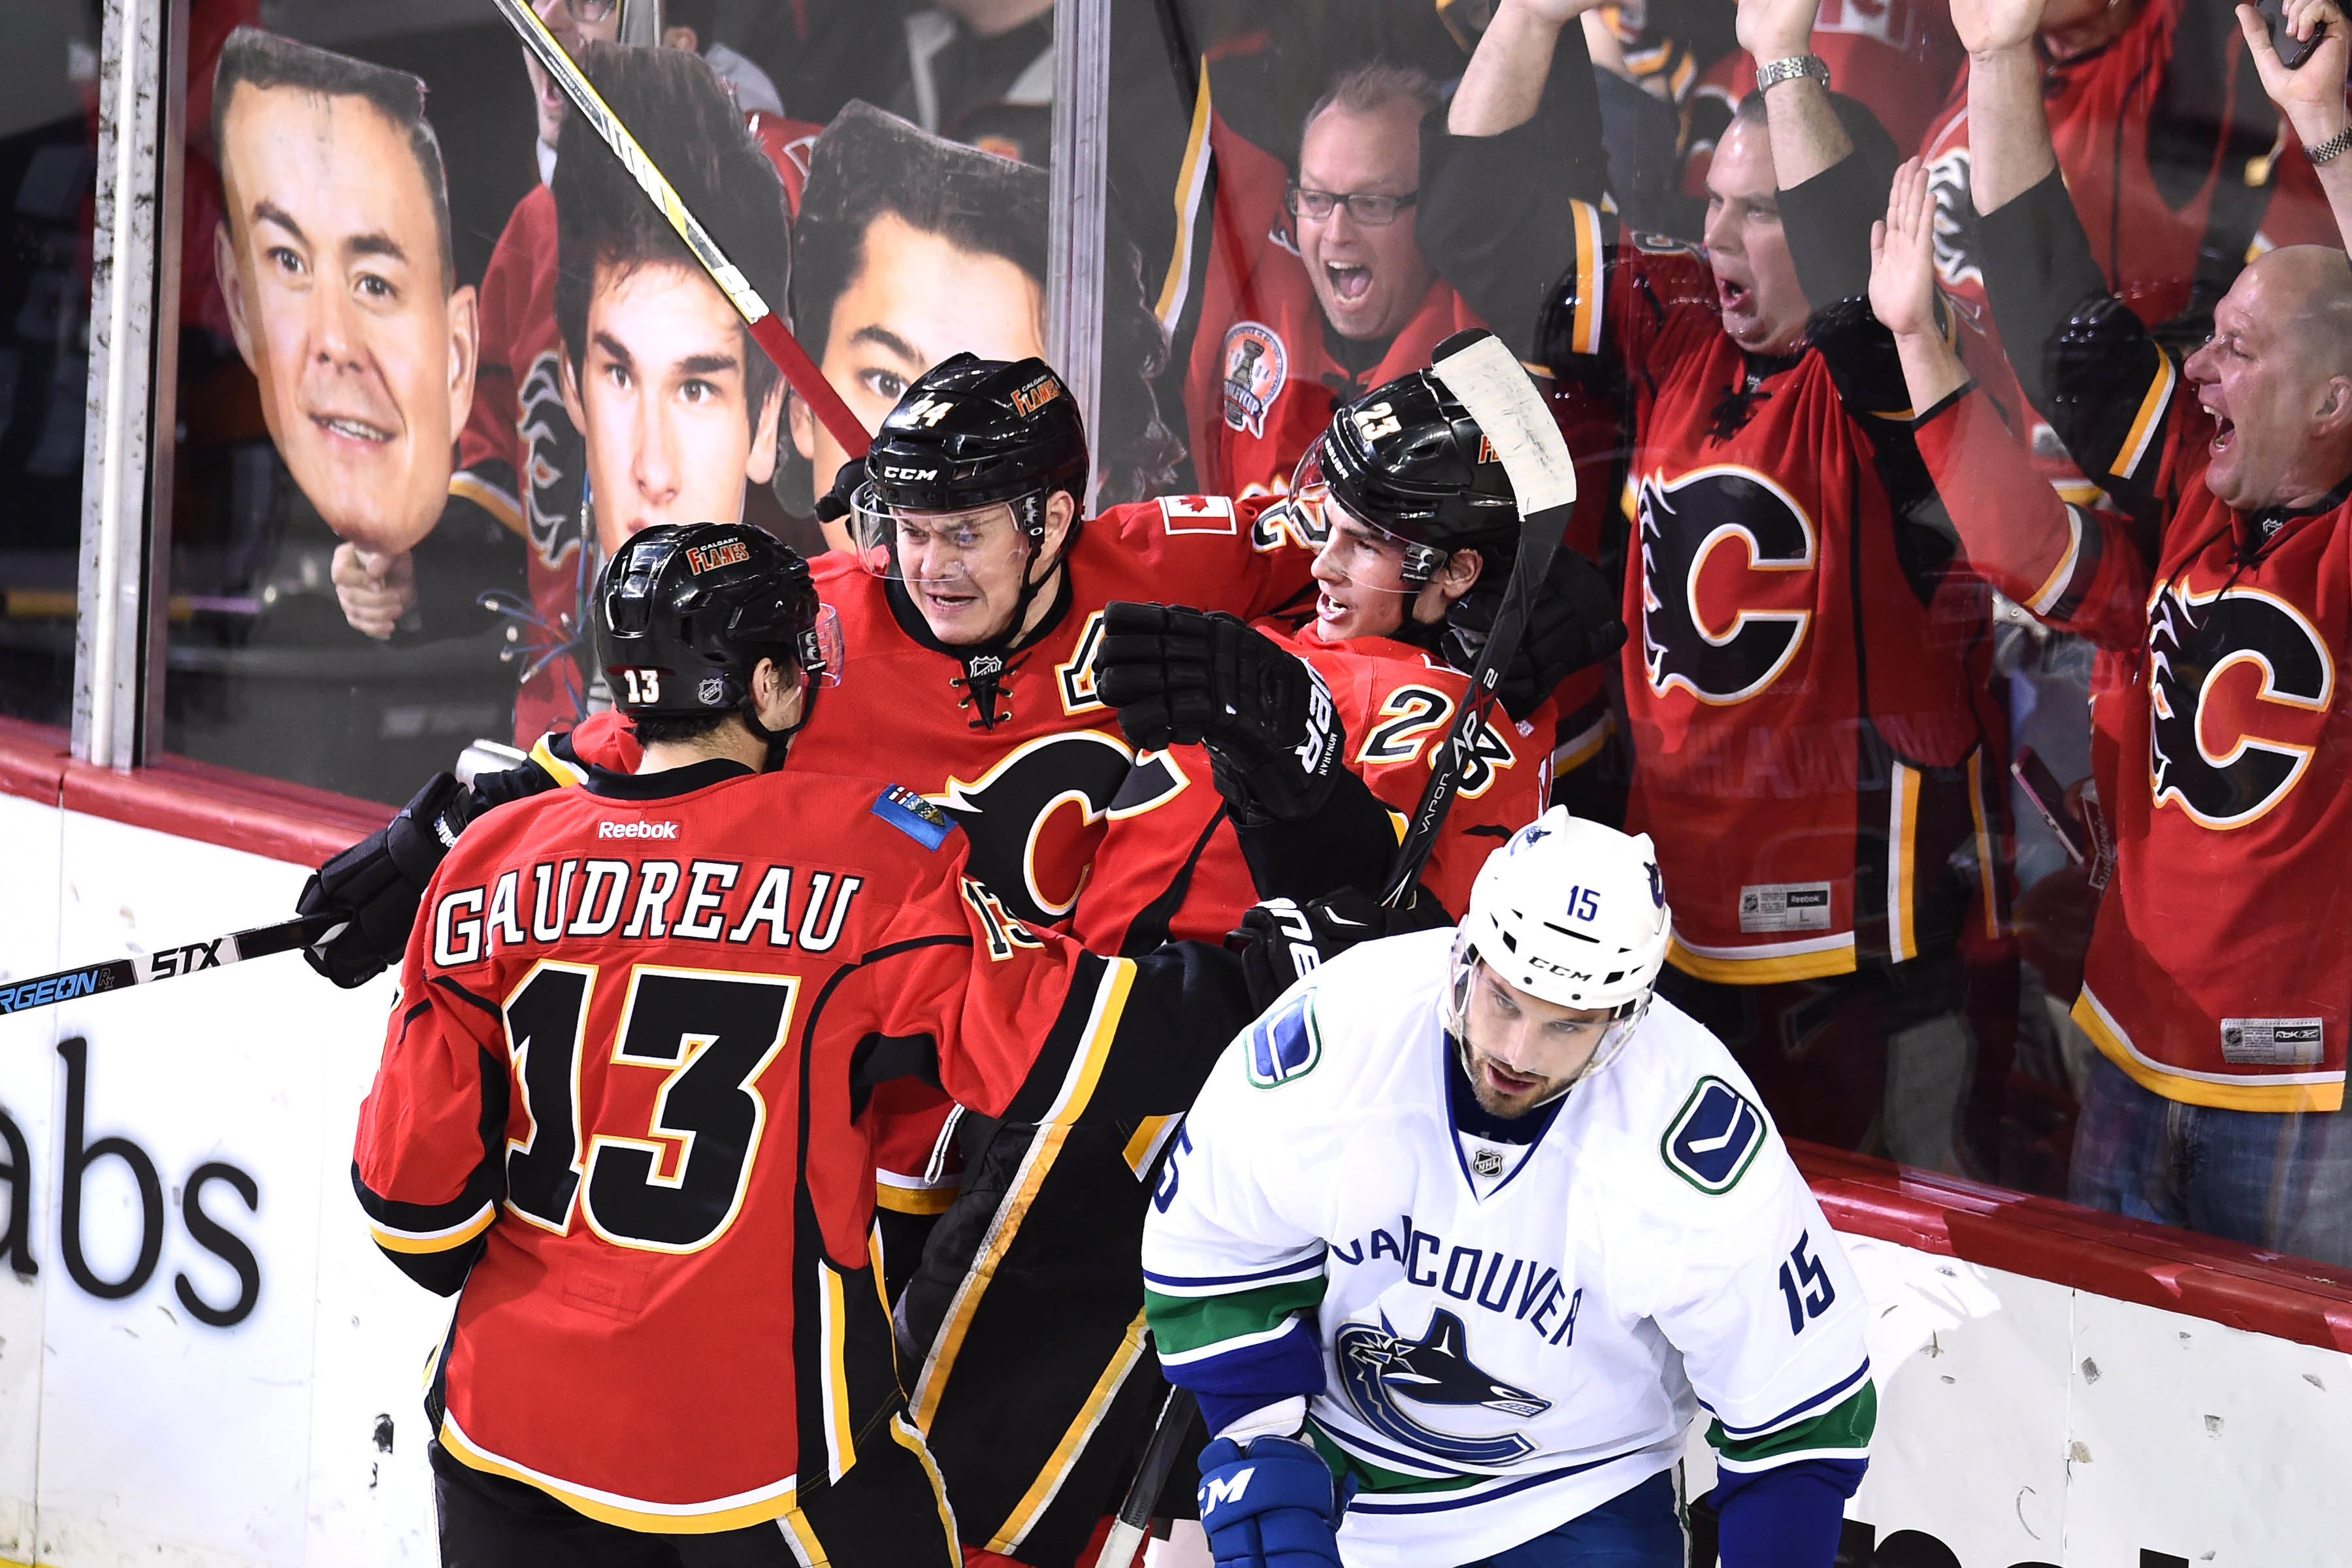 8538789-nhl-stanley-cup-playoffs-vancouver-canucks-at-calgary-flames